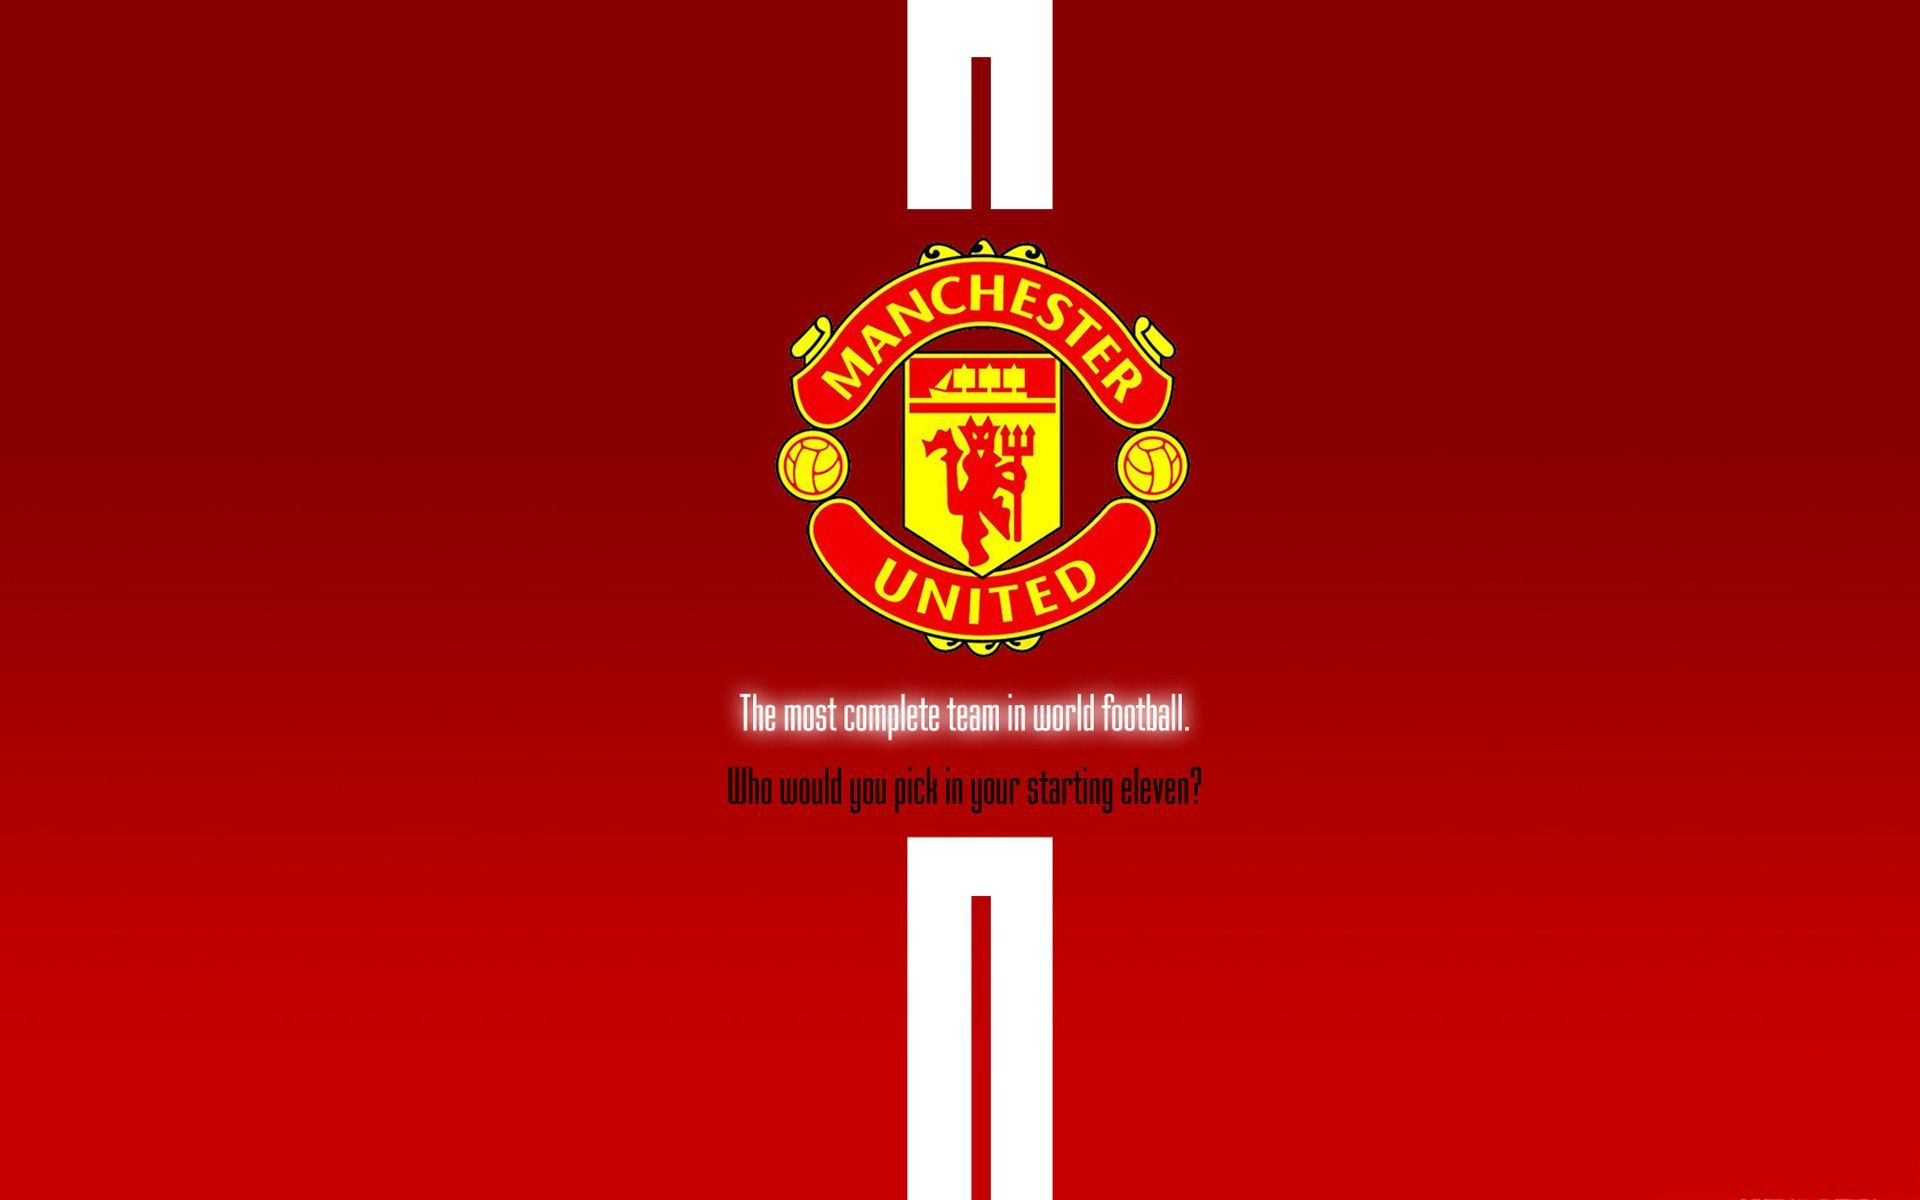 manchester united black logo wallpaper by dalibor manchester 1920a—1200 wallpaper manchester united 41